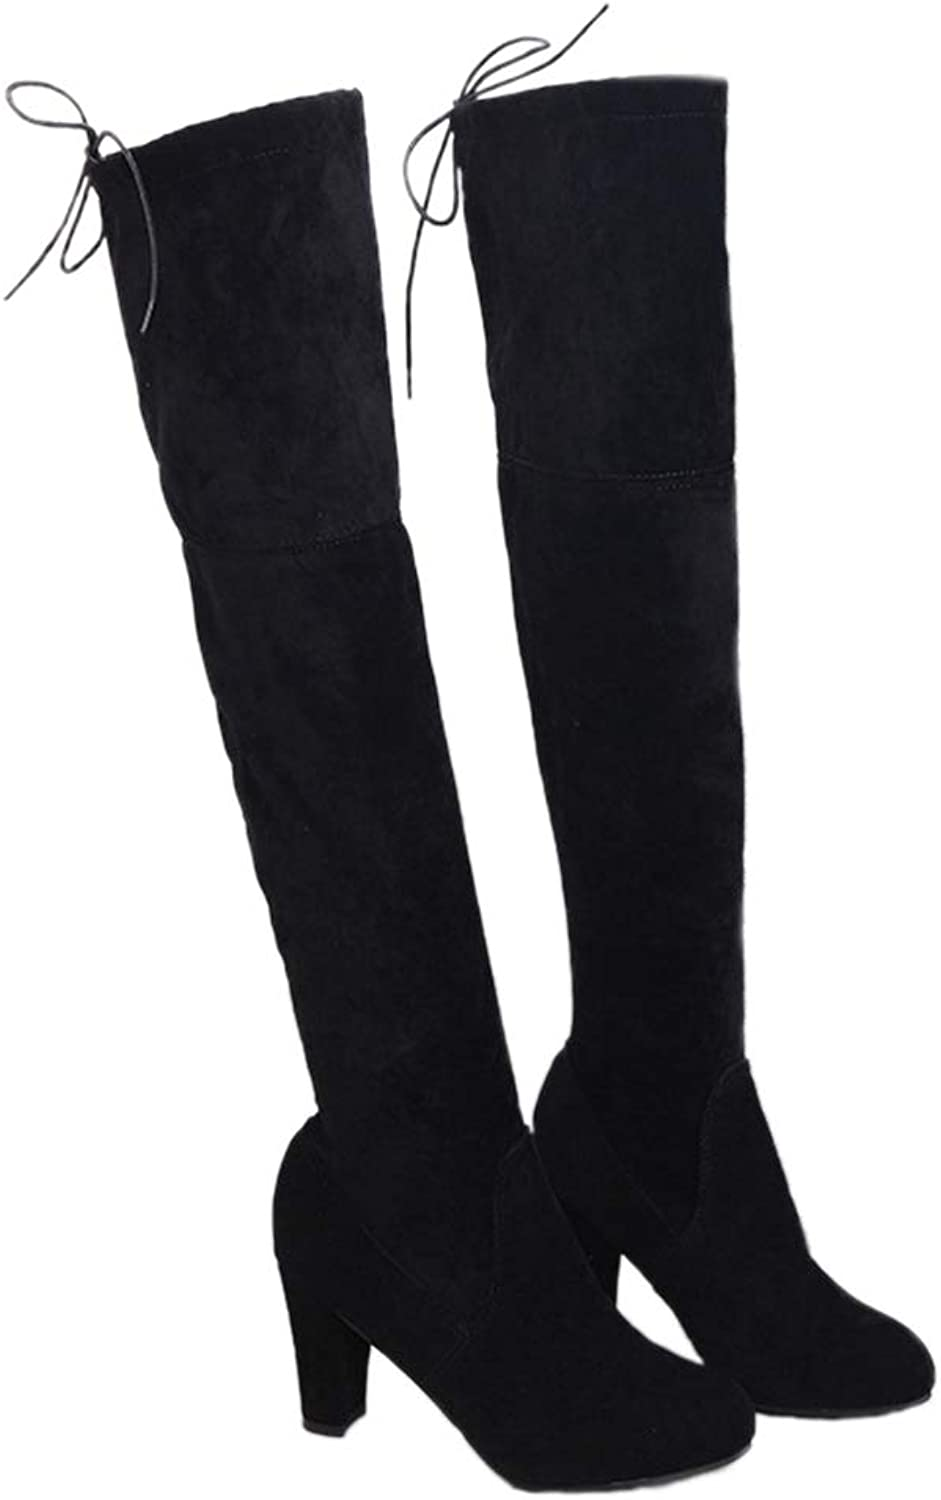 Spring Thigh High Boot Faux Suede Leather High Heels Winter Over The Knee Women Fashion Long Boots